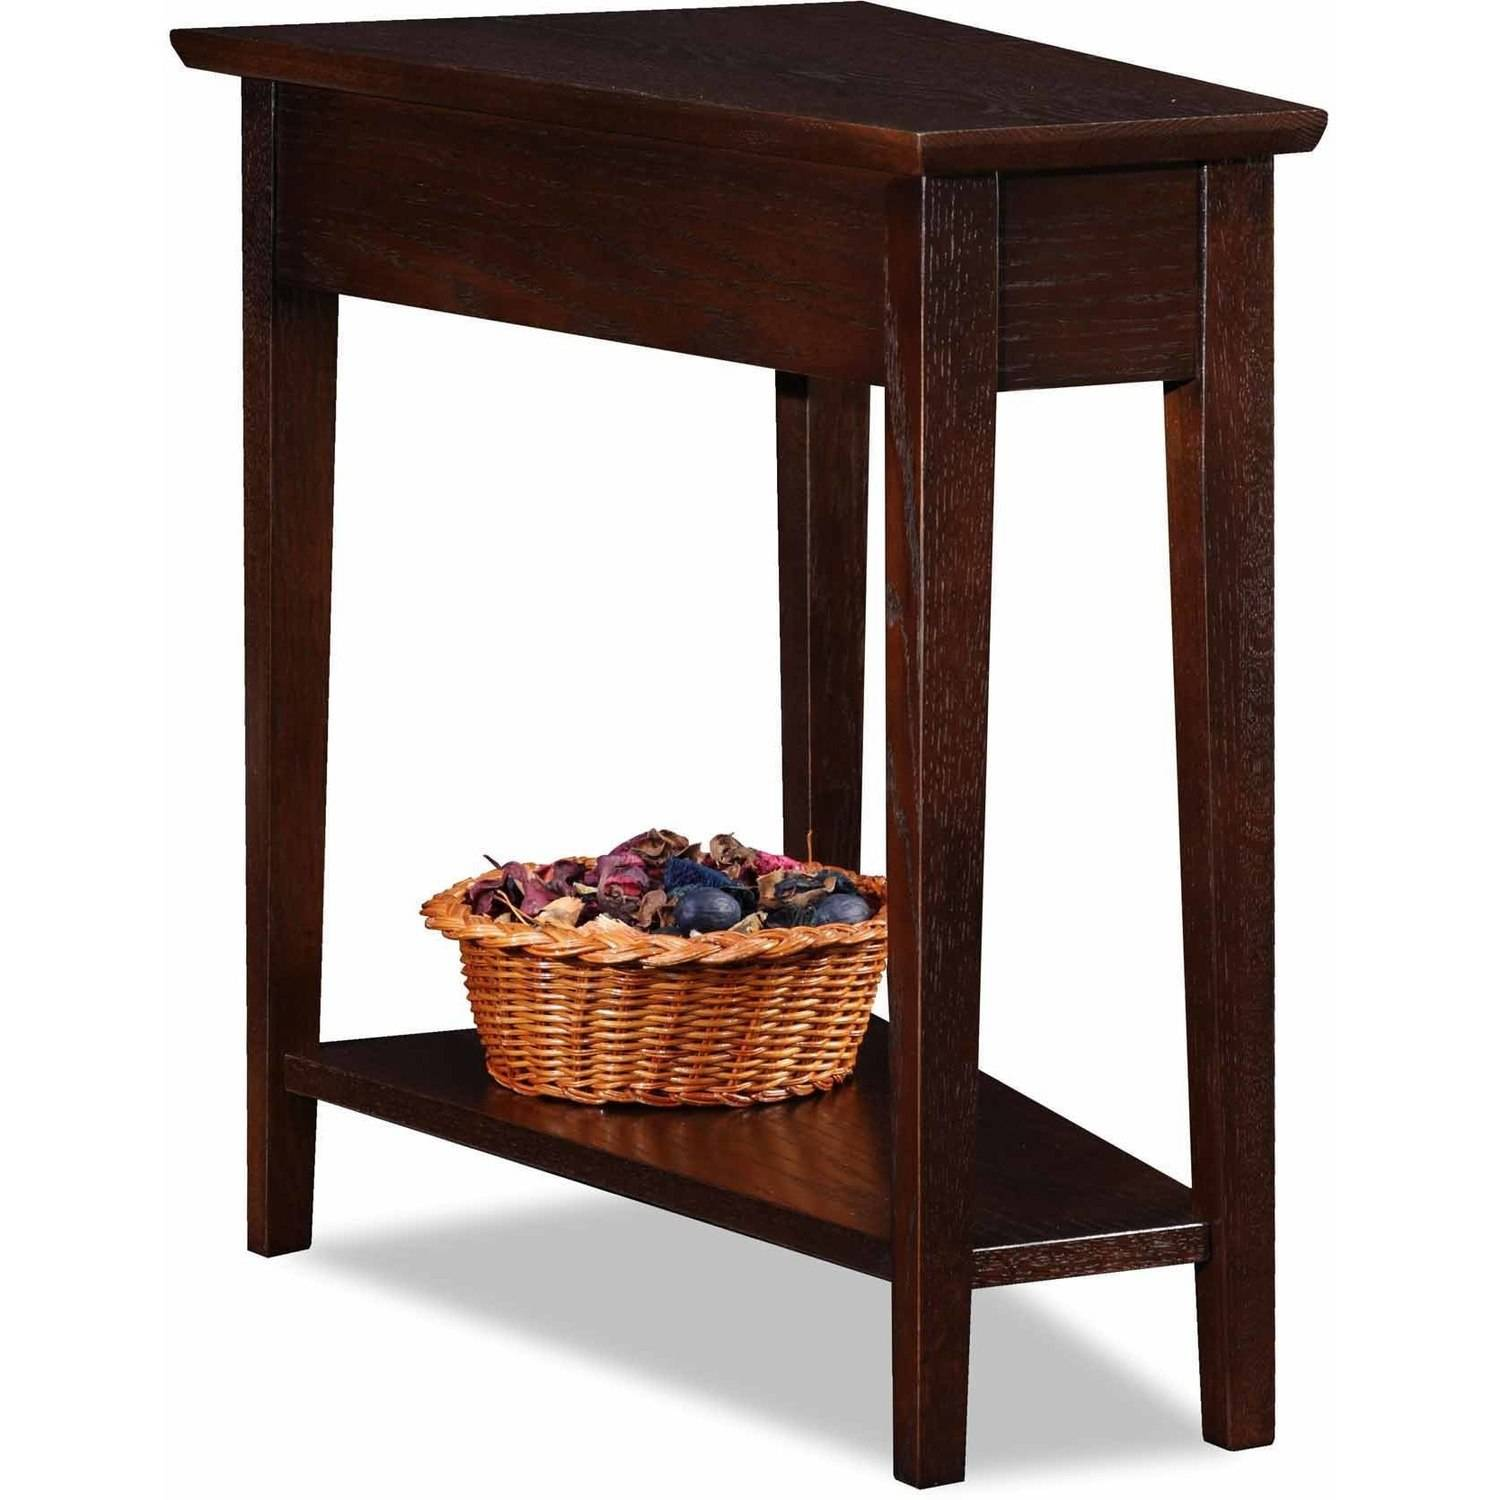 Leick Home Recliner Wedge Table, Multiple Colors